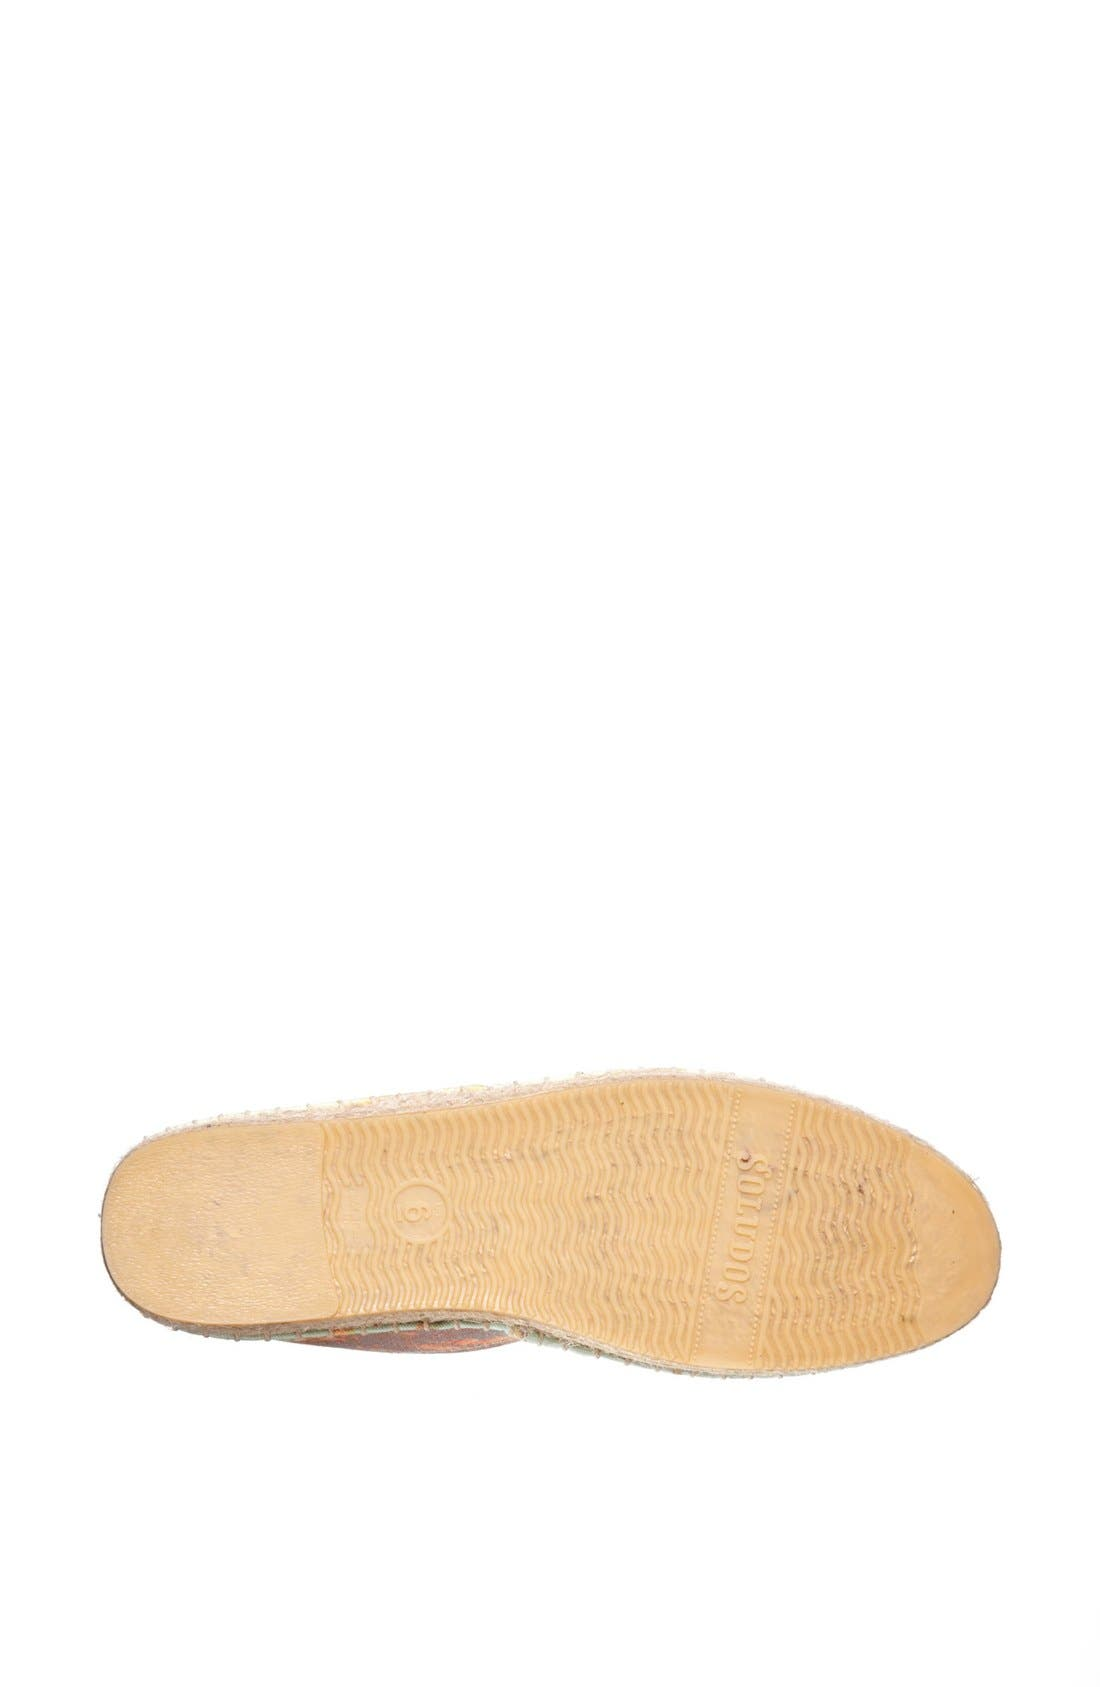 Alternate Image 4  - We Are Handsome x Soludos Slip-On (Limited Edition) (Women)